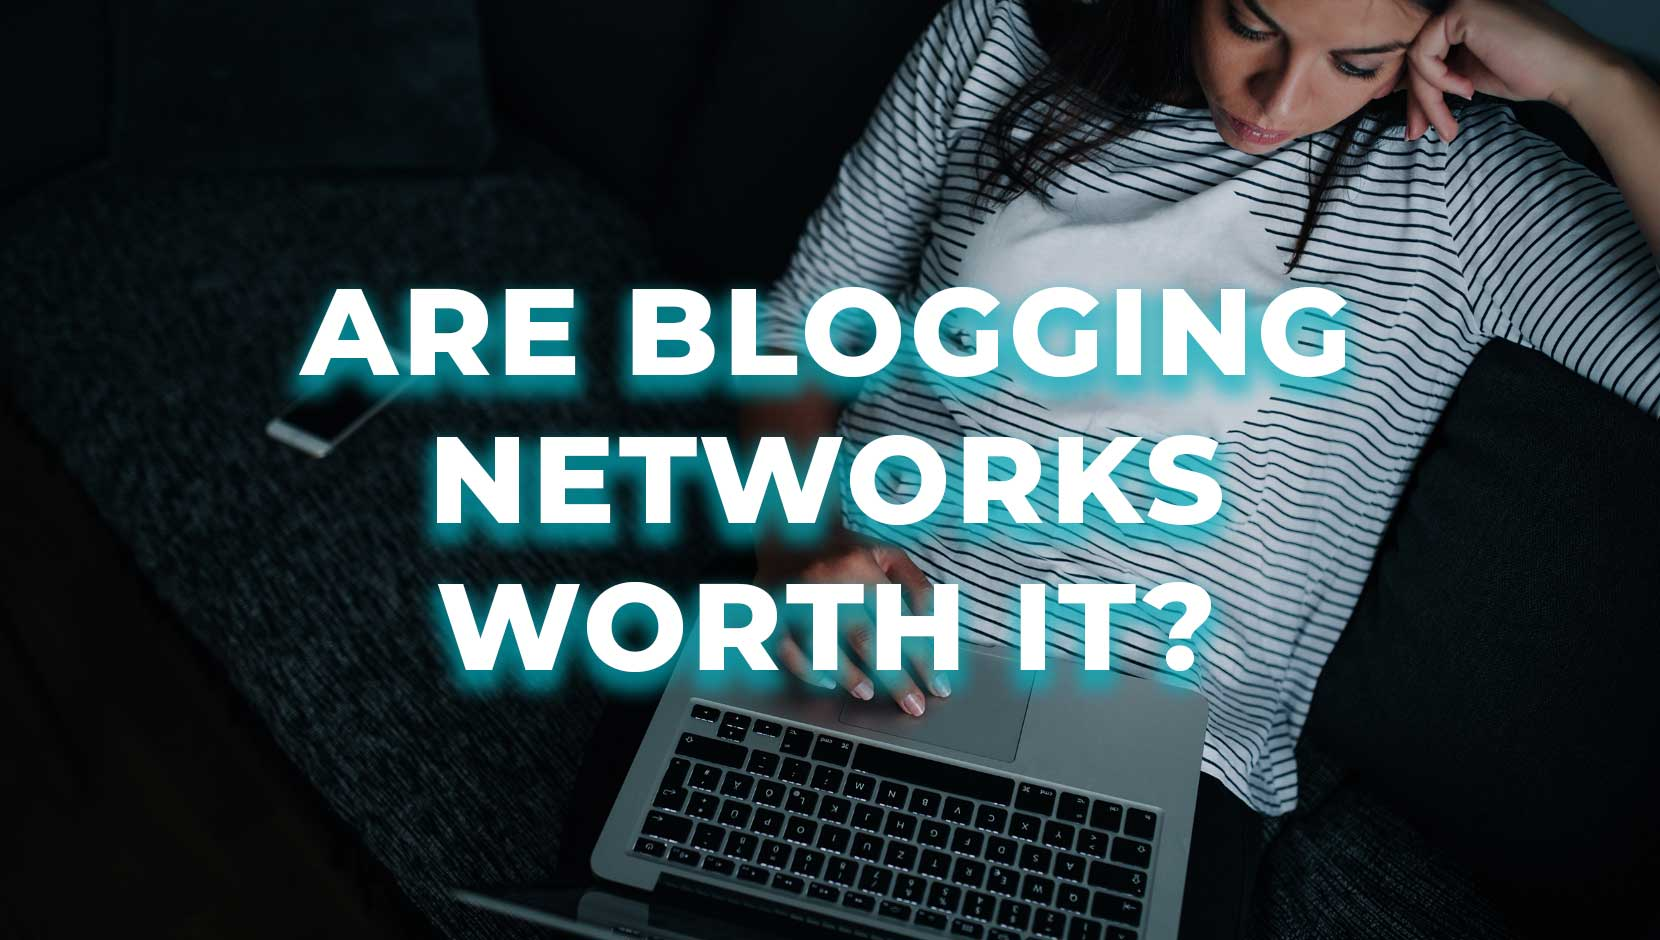 Are Blogging Networks Worth It?